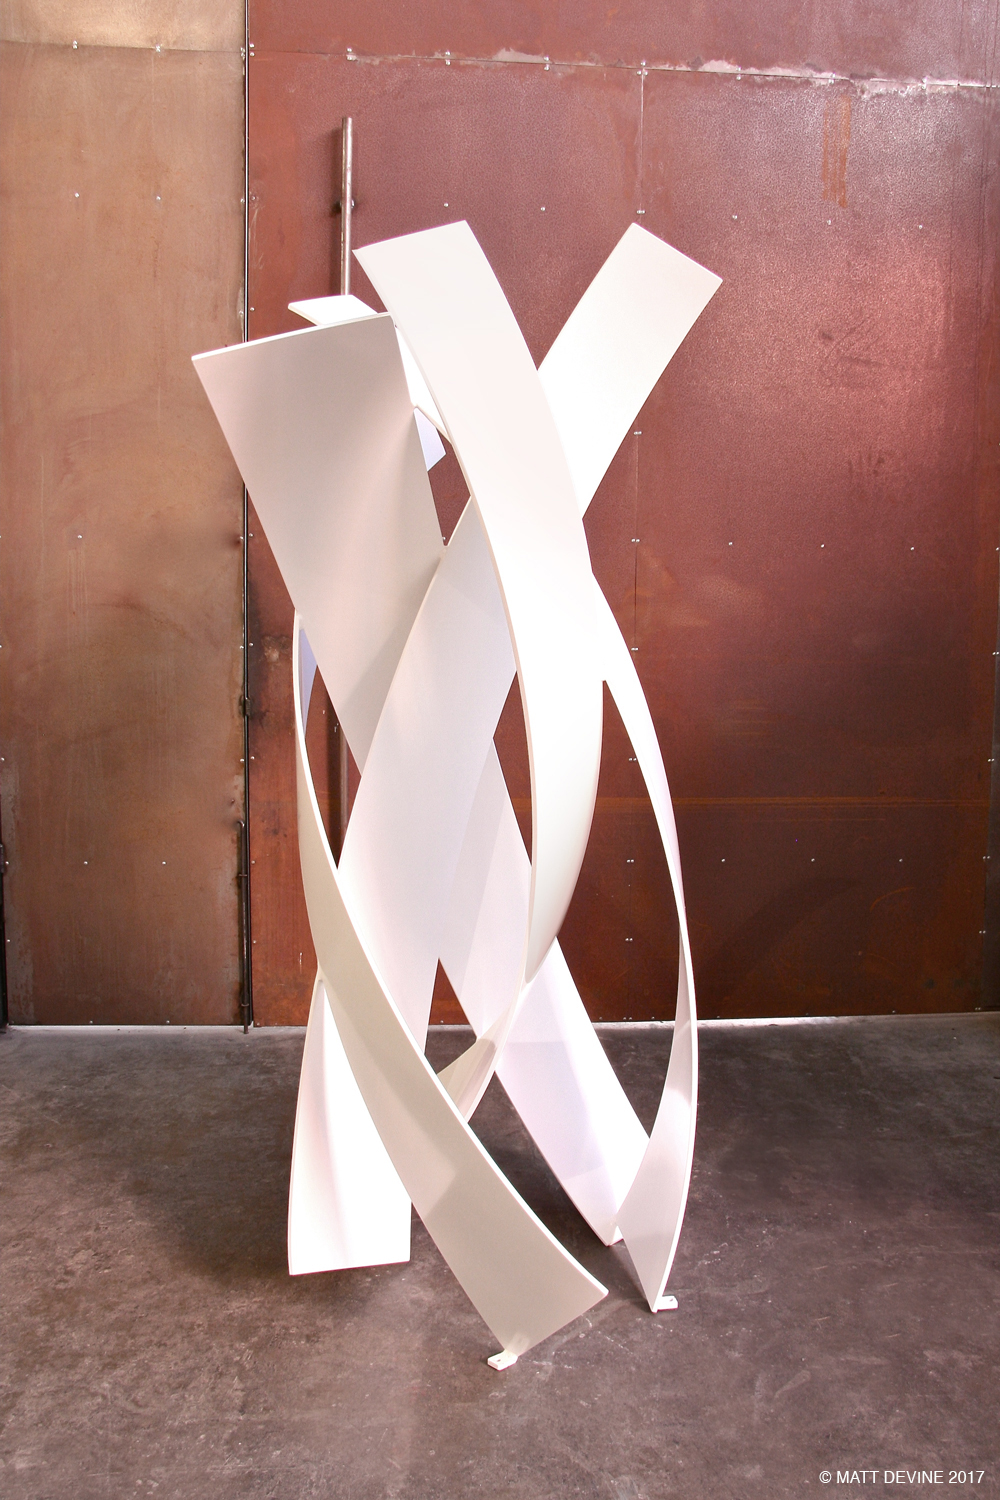 BEGINNING TO SEE THE LIGHT, 2014 aluminum with powdercoat, 80H x 46W x 38D